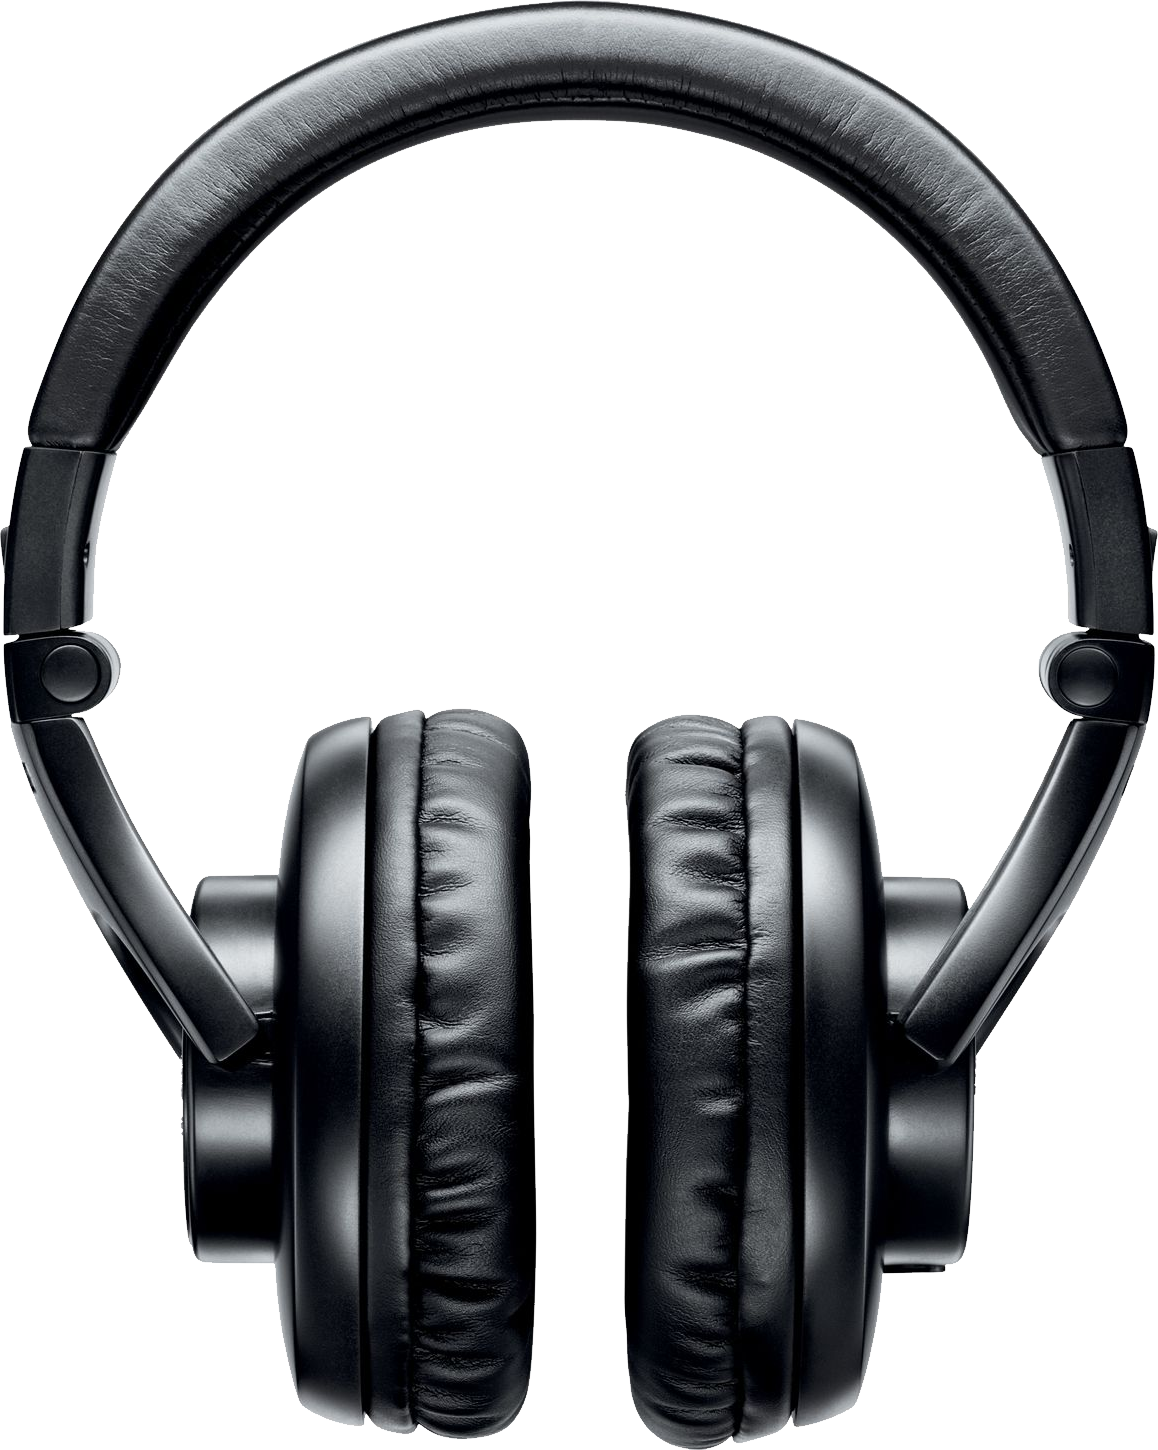 Png headphones. Image without background web